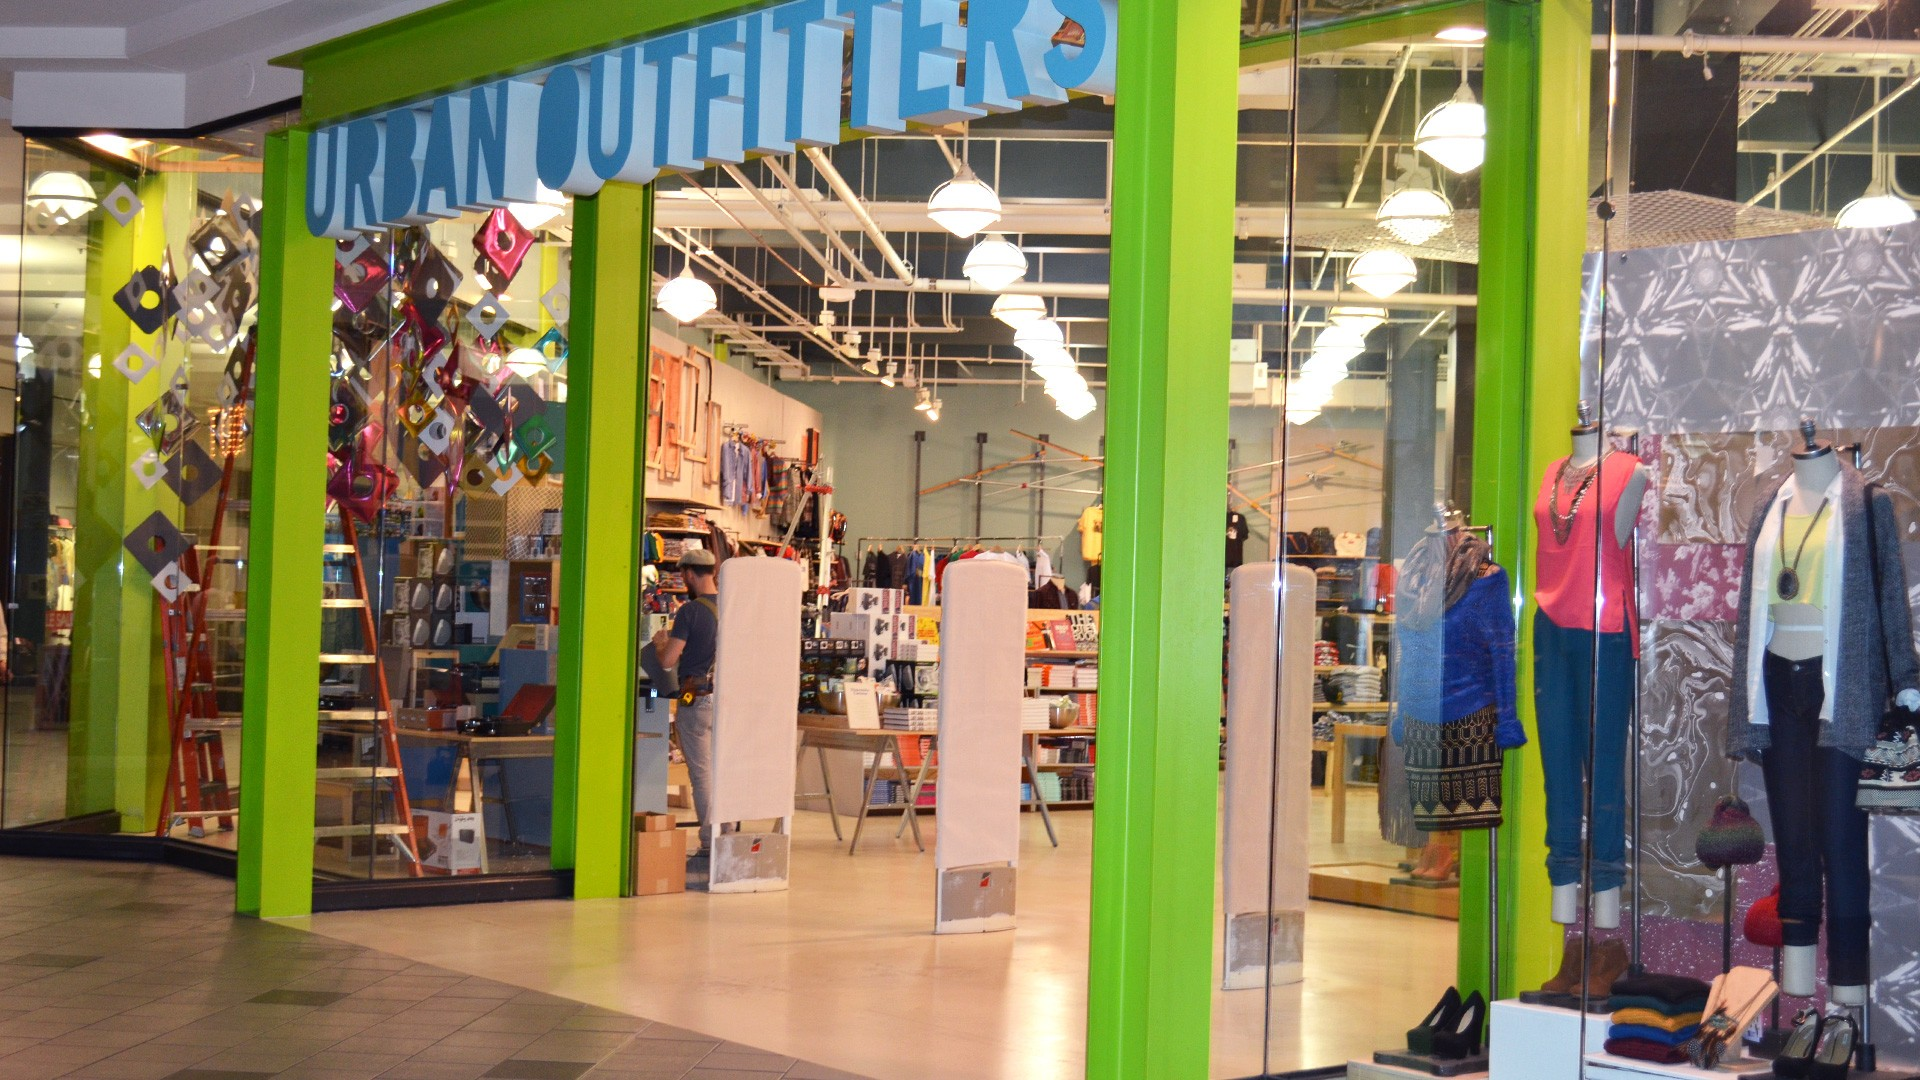 Urban Outfitters | Mall of America